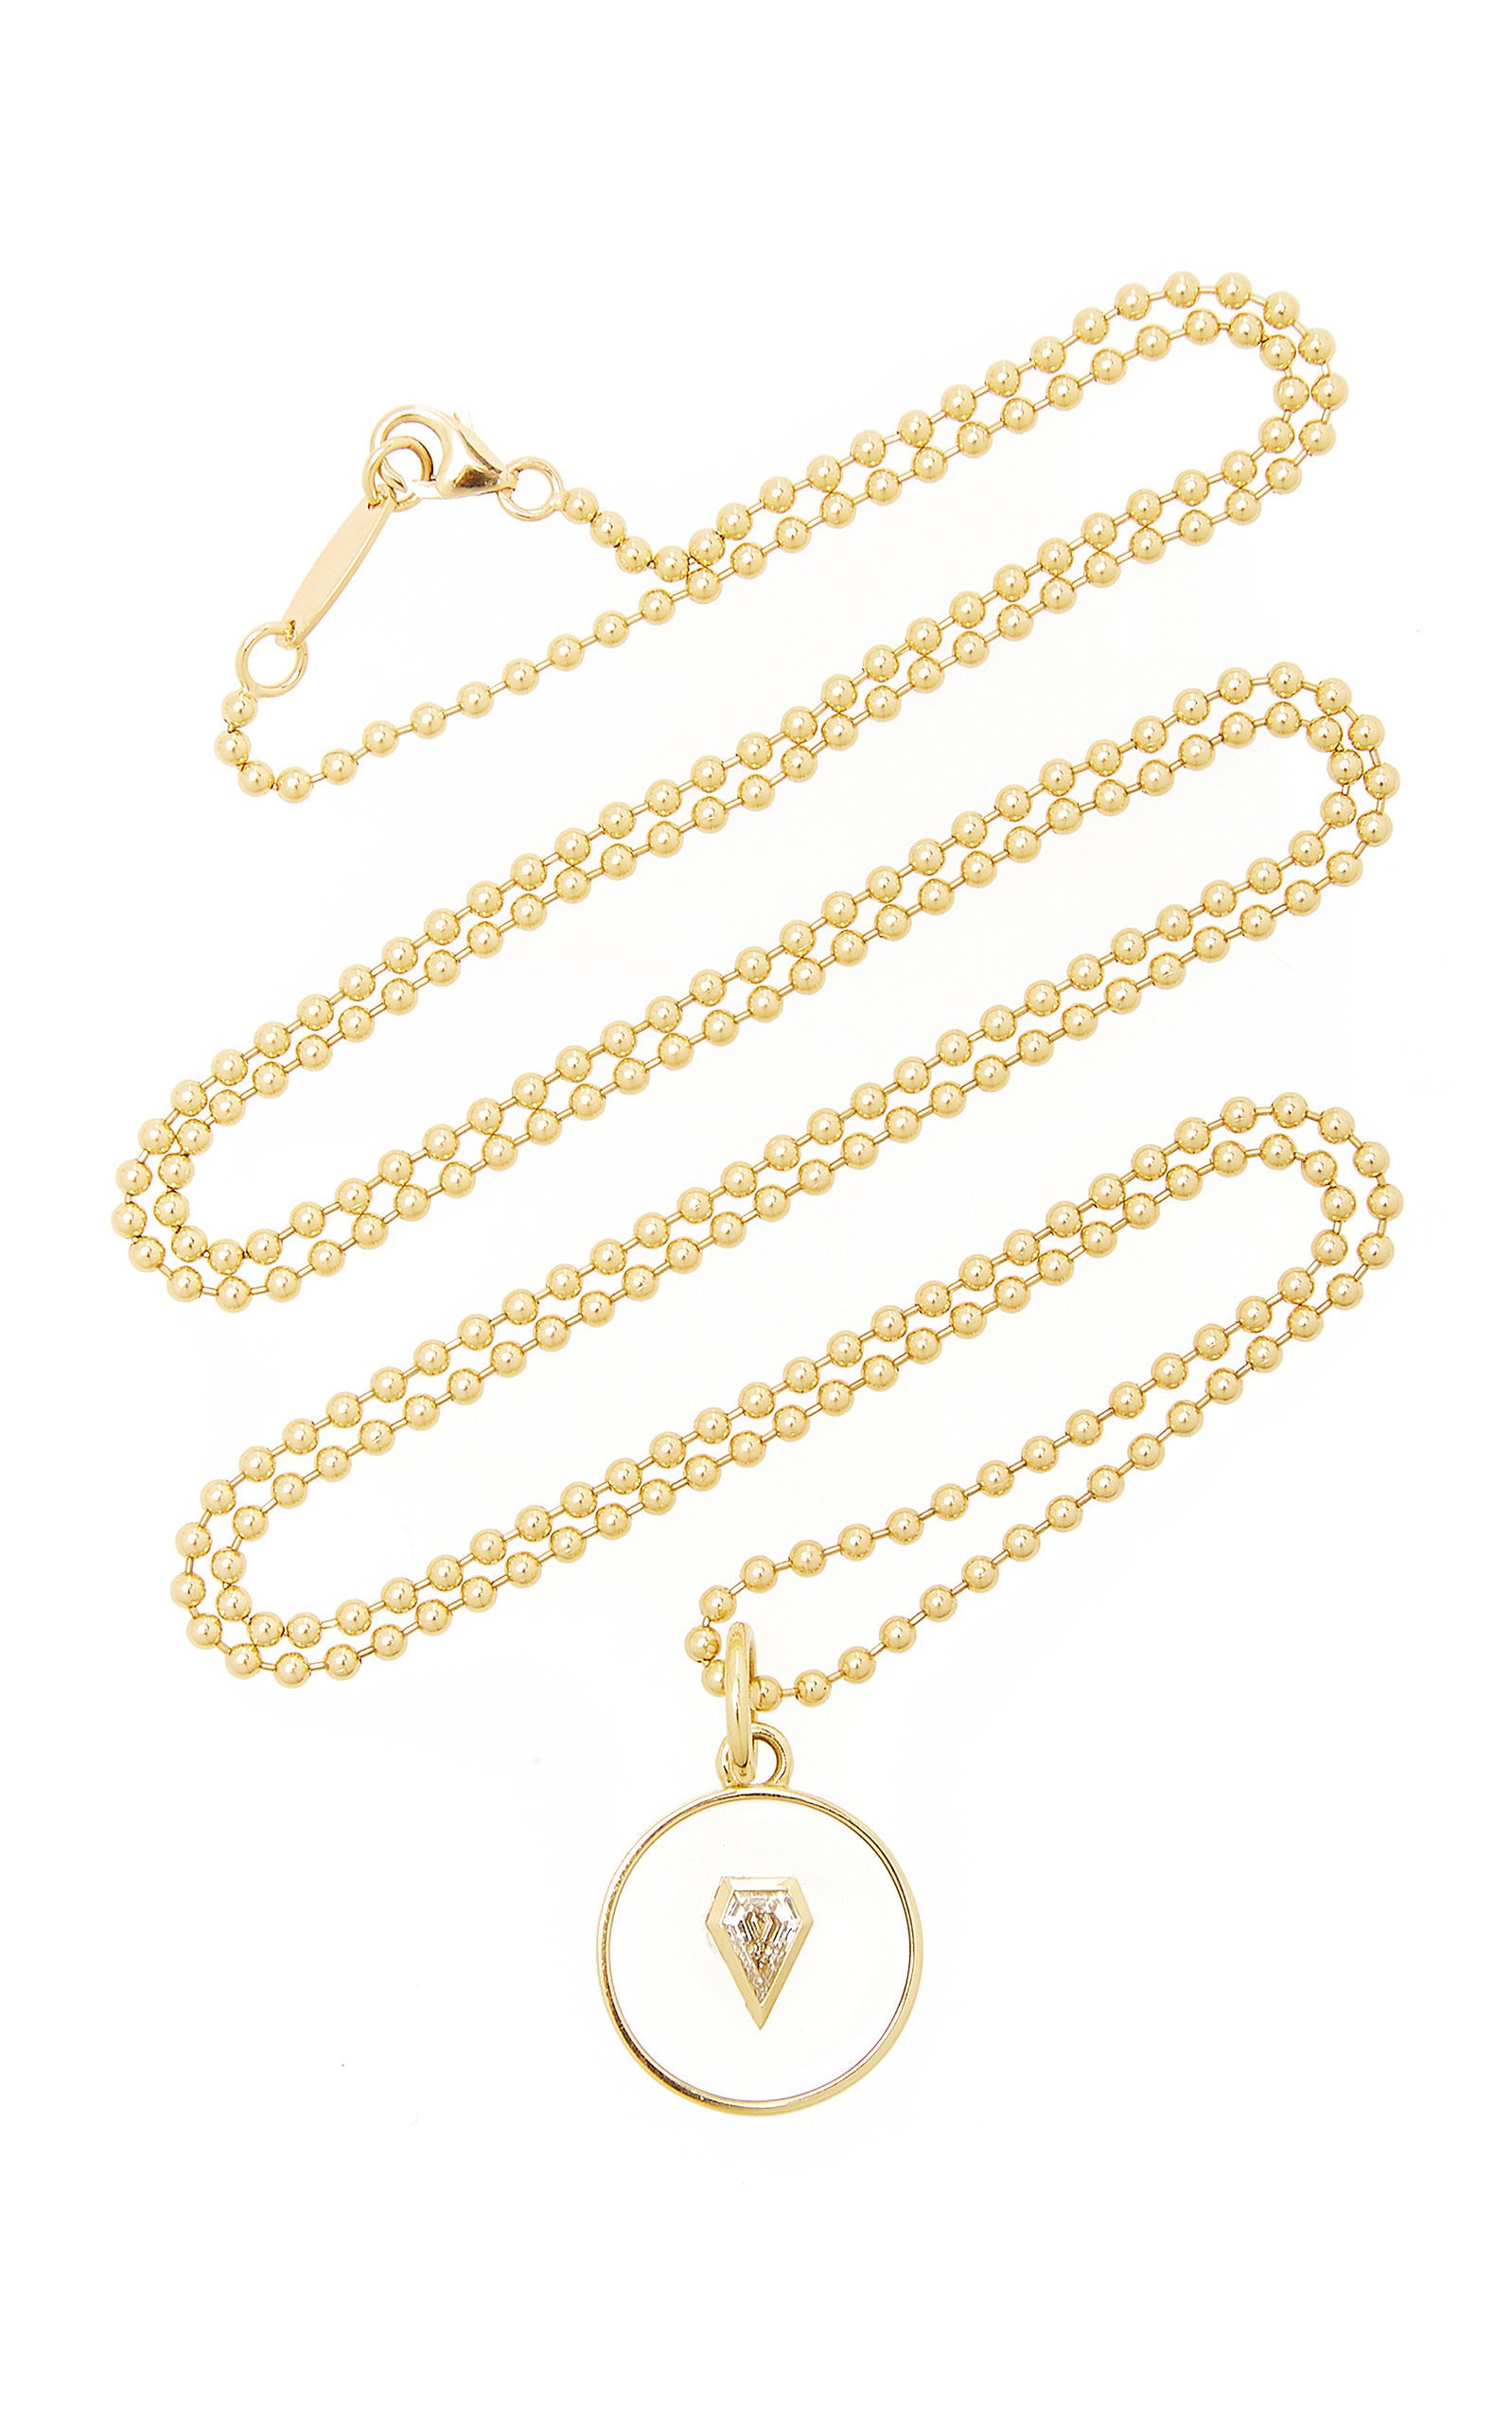 Jemma Wynne 18K Yellow Gold Necklace with Rock Crystal and Diamond Shield